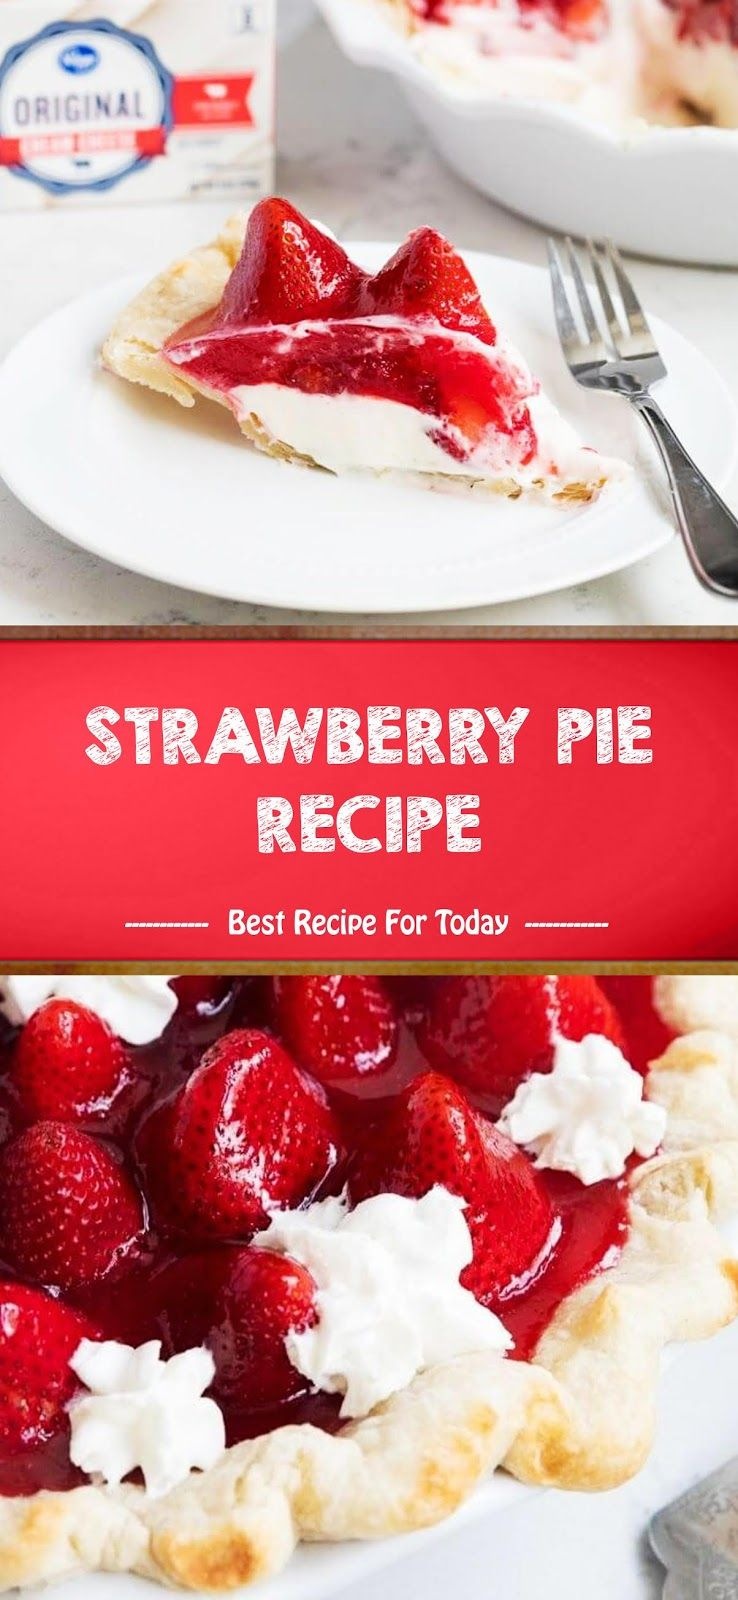 Strawberry Pie Recipe The Ingredients And How To Make It Please Visit The Website Simple Recipes Easy Di 2020 Resep Makanan Penutup Resep Makanan Resep Pai